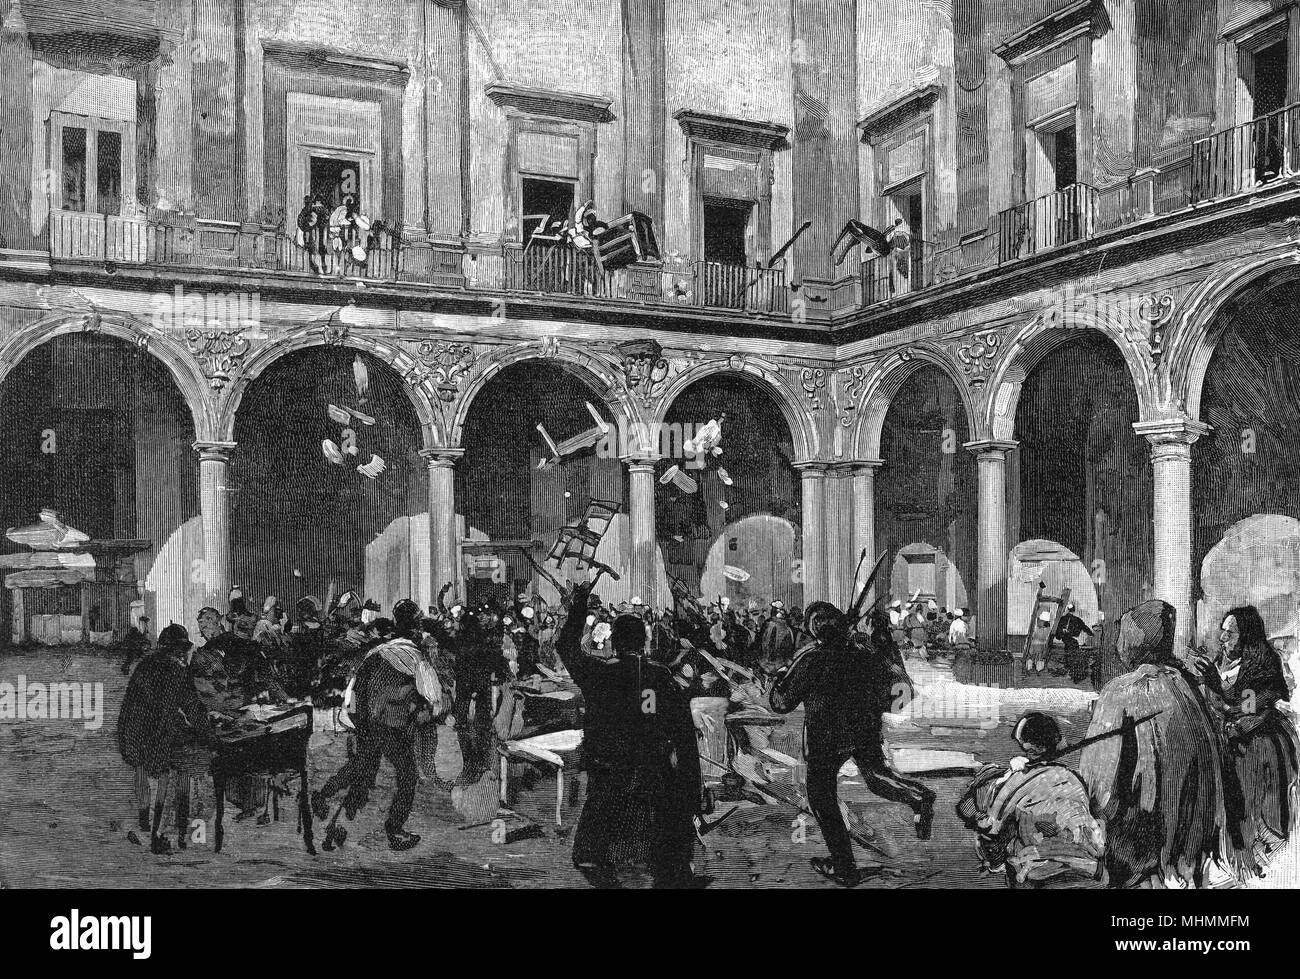 Two years of unrest and protest by the 'Fasci Siciliani' culminate in violence : government offices are ransacked by the mob.      Date: January 1894 - Stock Image